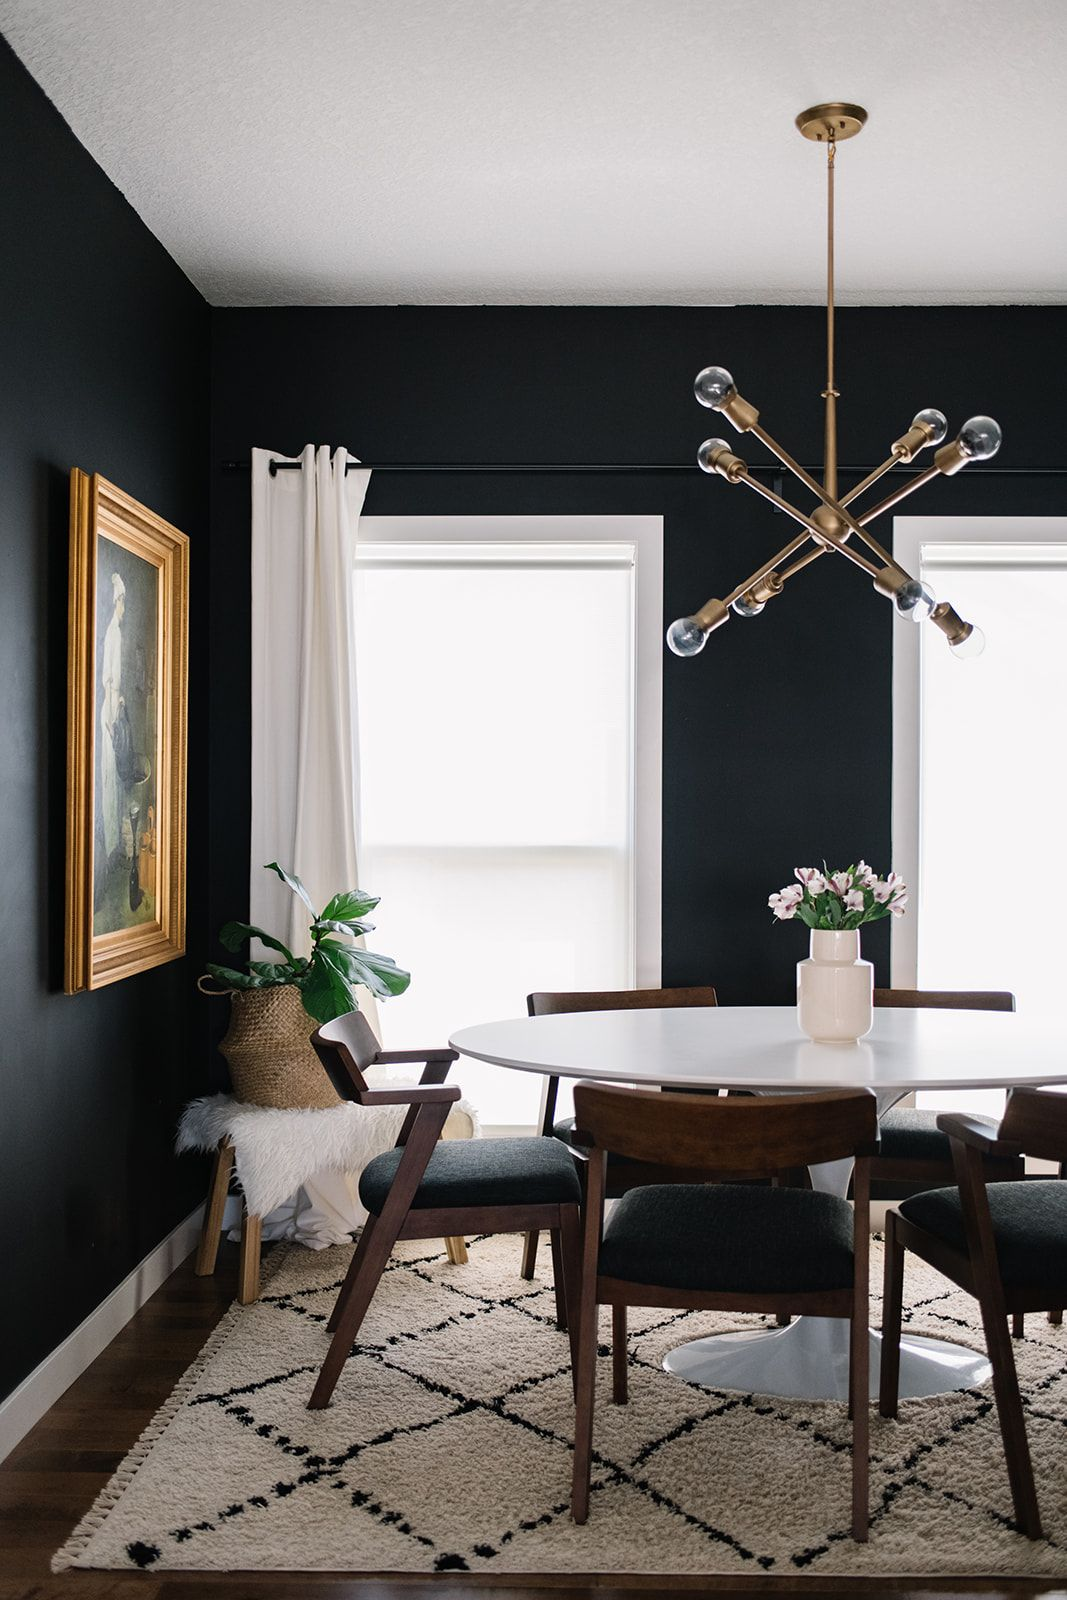 Black White Walnut Our Dining Room Refresh With The Article